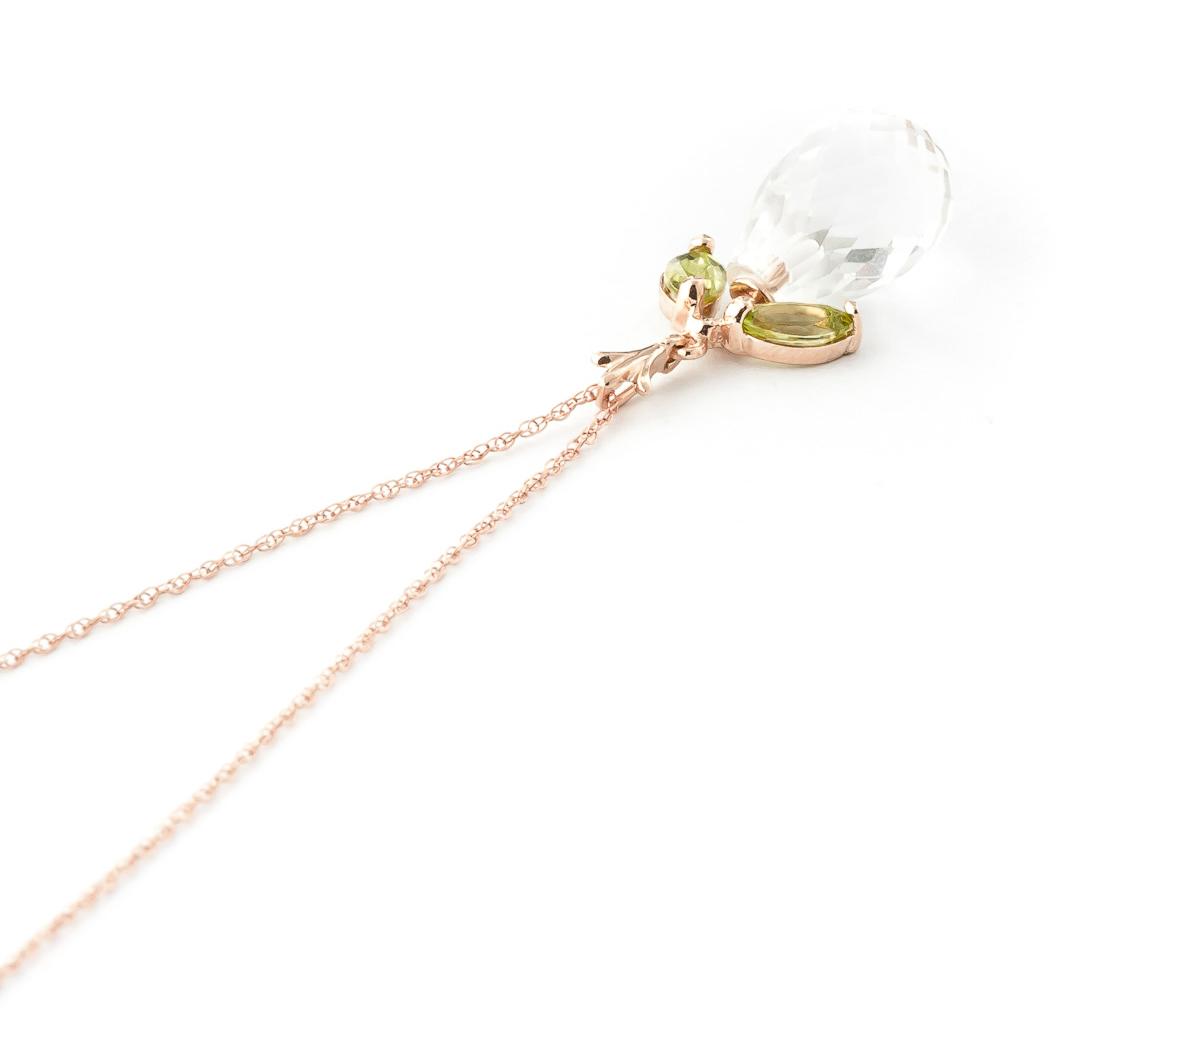 White Topaz and Peridot Pendant Necklace 7.2ctw in 9ct Rose Gold